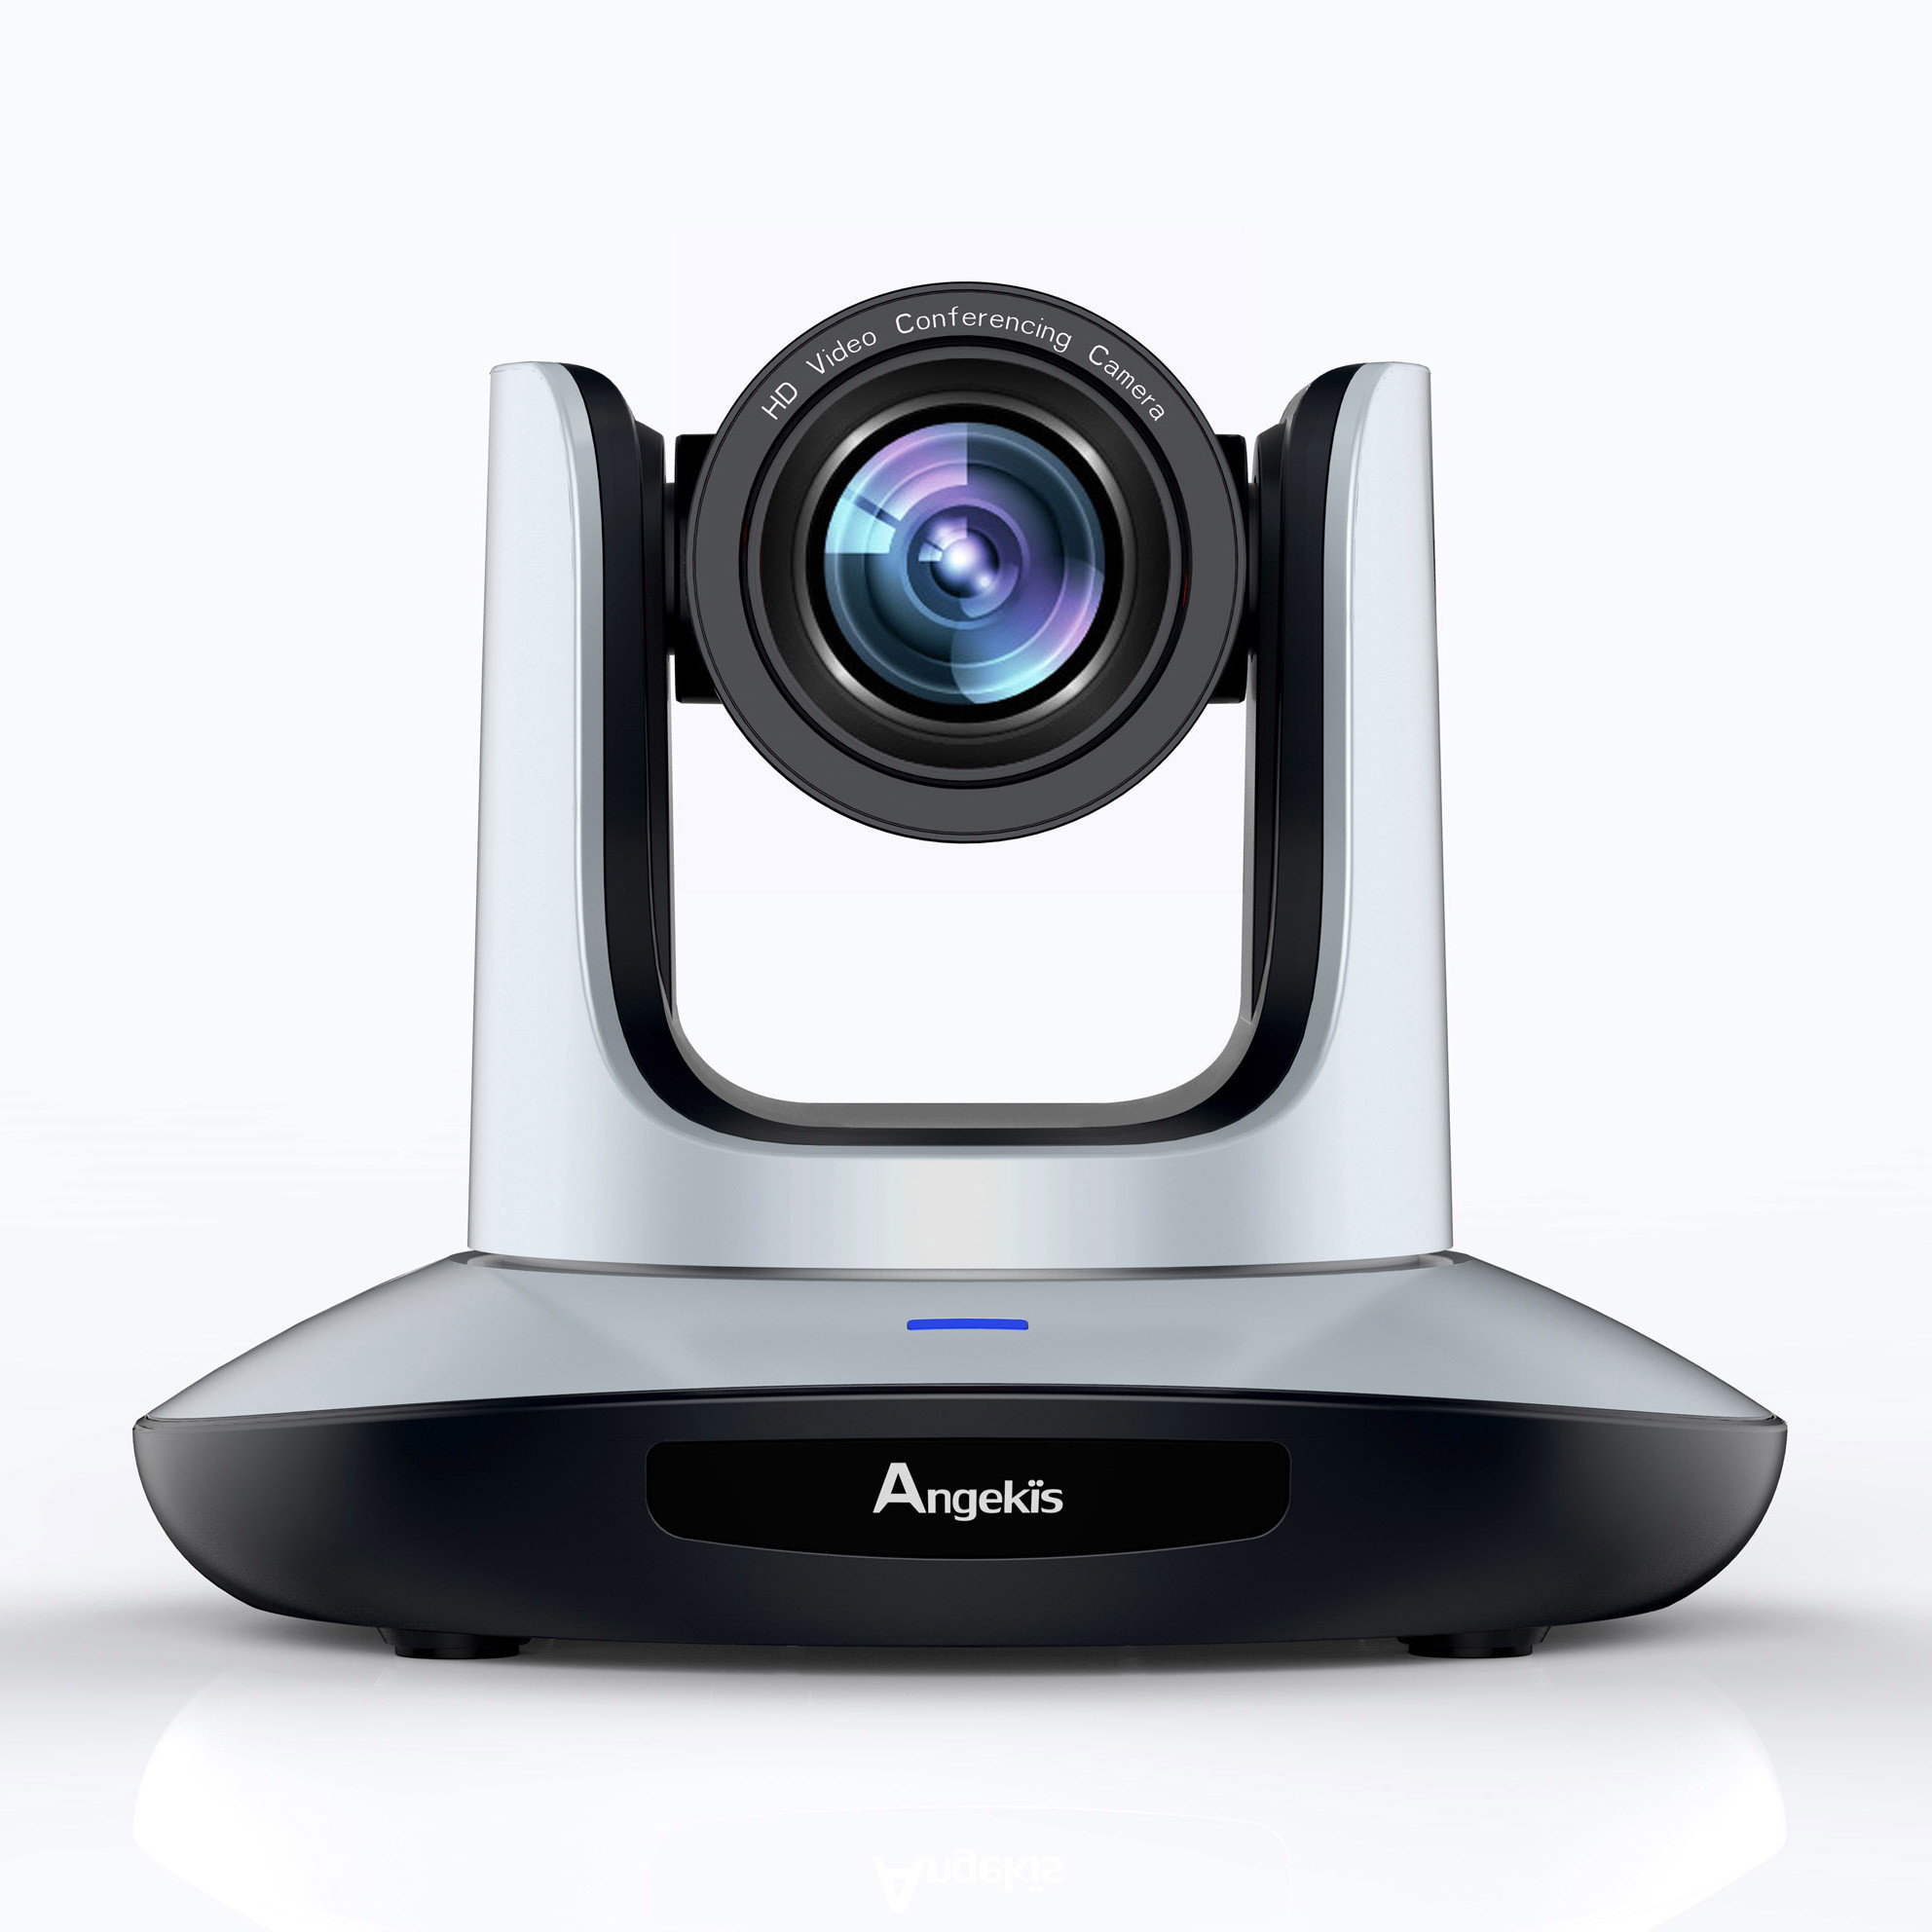 1080P 60 Video Conference HD USB 3.0 12X USB PTZ Camera (U3-12FHD60)